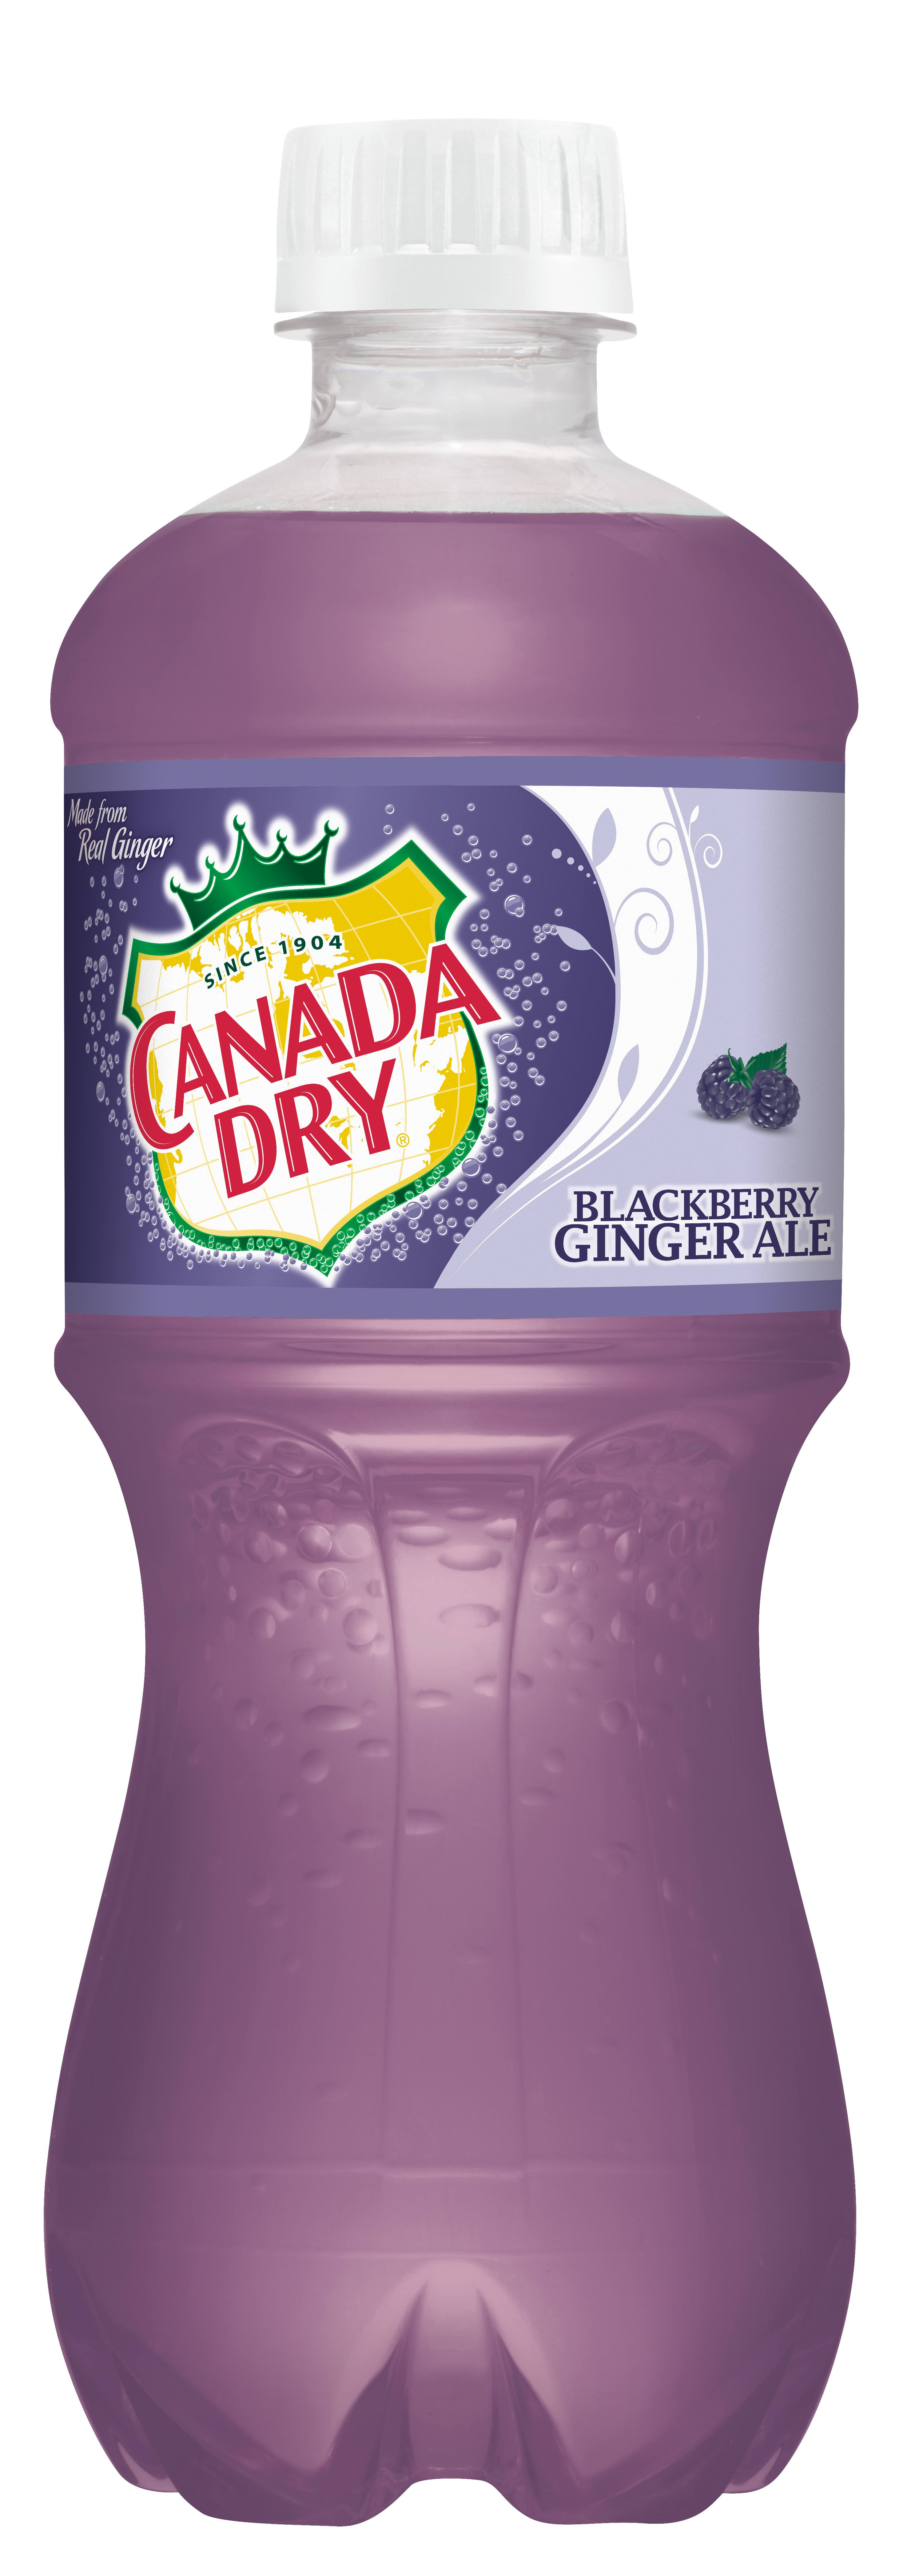 Canada Dry Blackberry Ginger Ale - 20 fl oz bottle